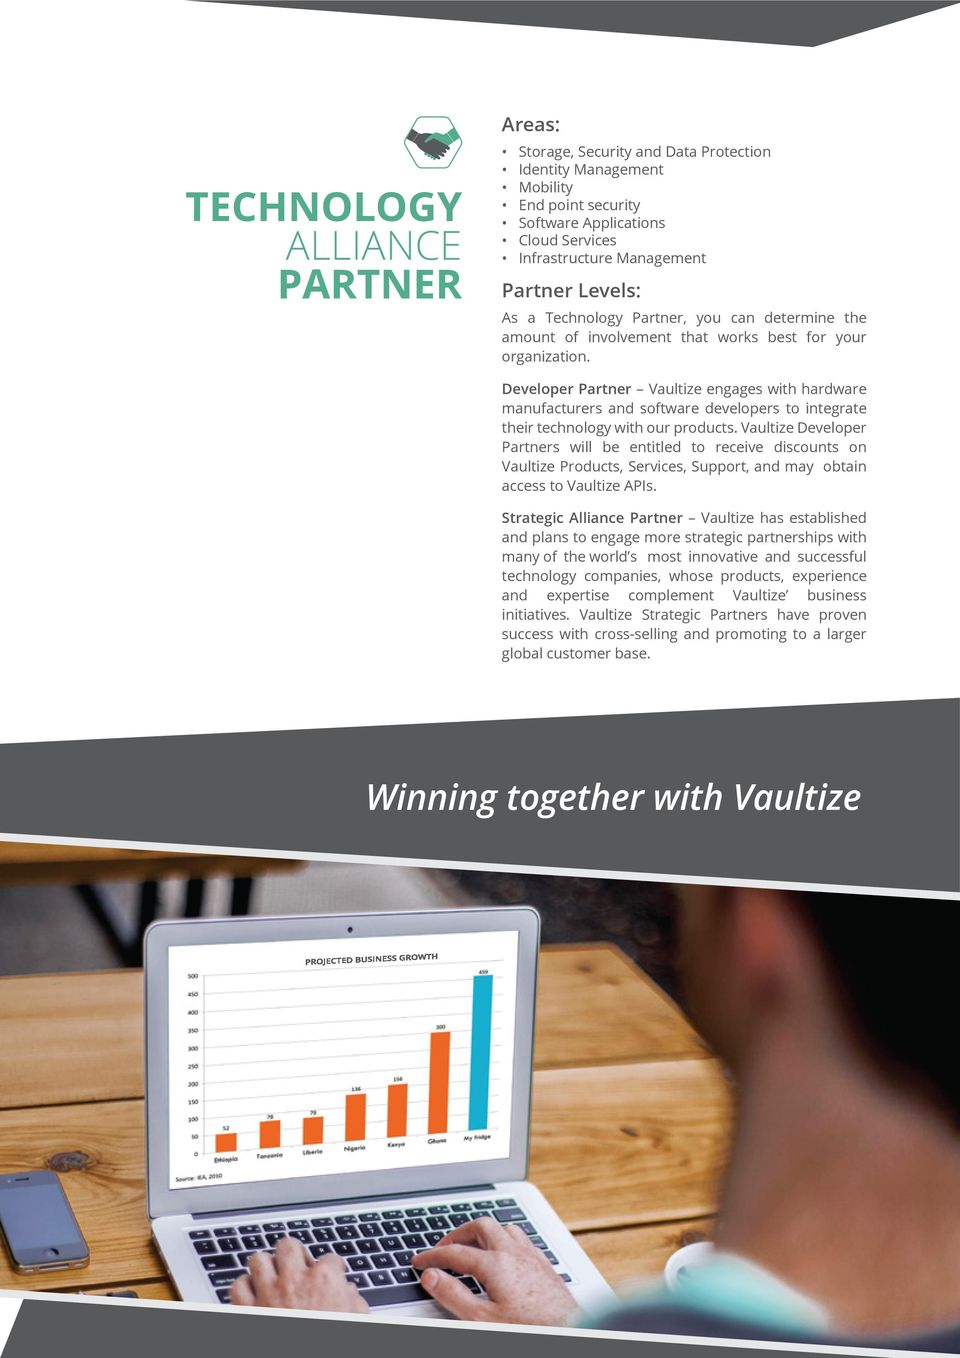 Developer Partner Vaultize engages with hardware manufacturers and software developers to integrate their technology with our products.